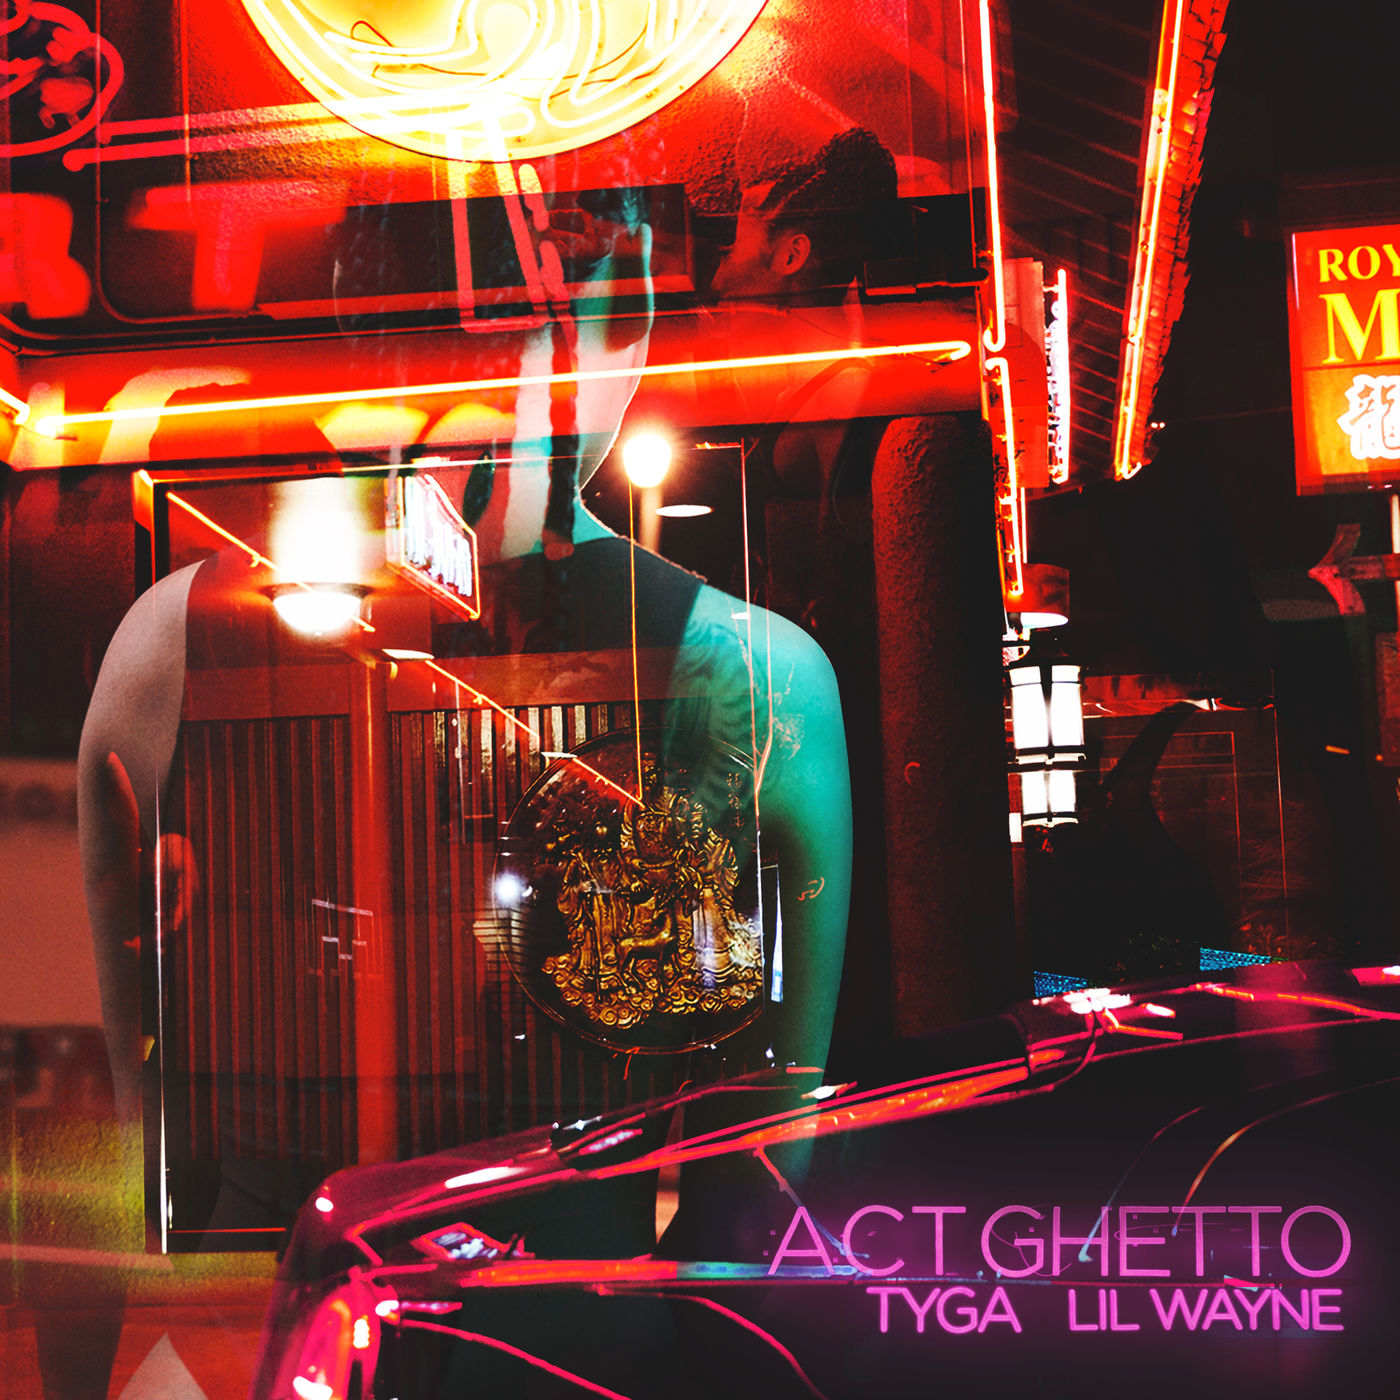 Tyga - Act Ghetto (feat. Lil Wayne) - Single Cover